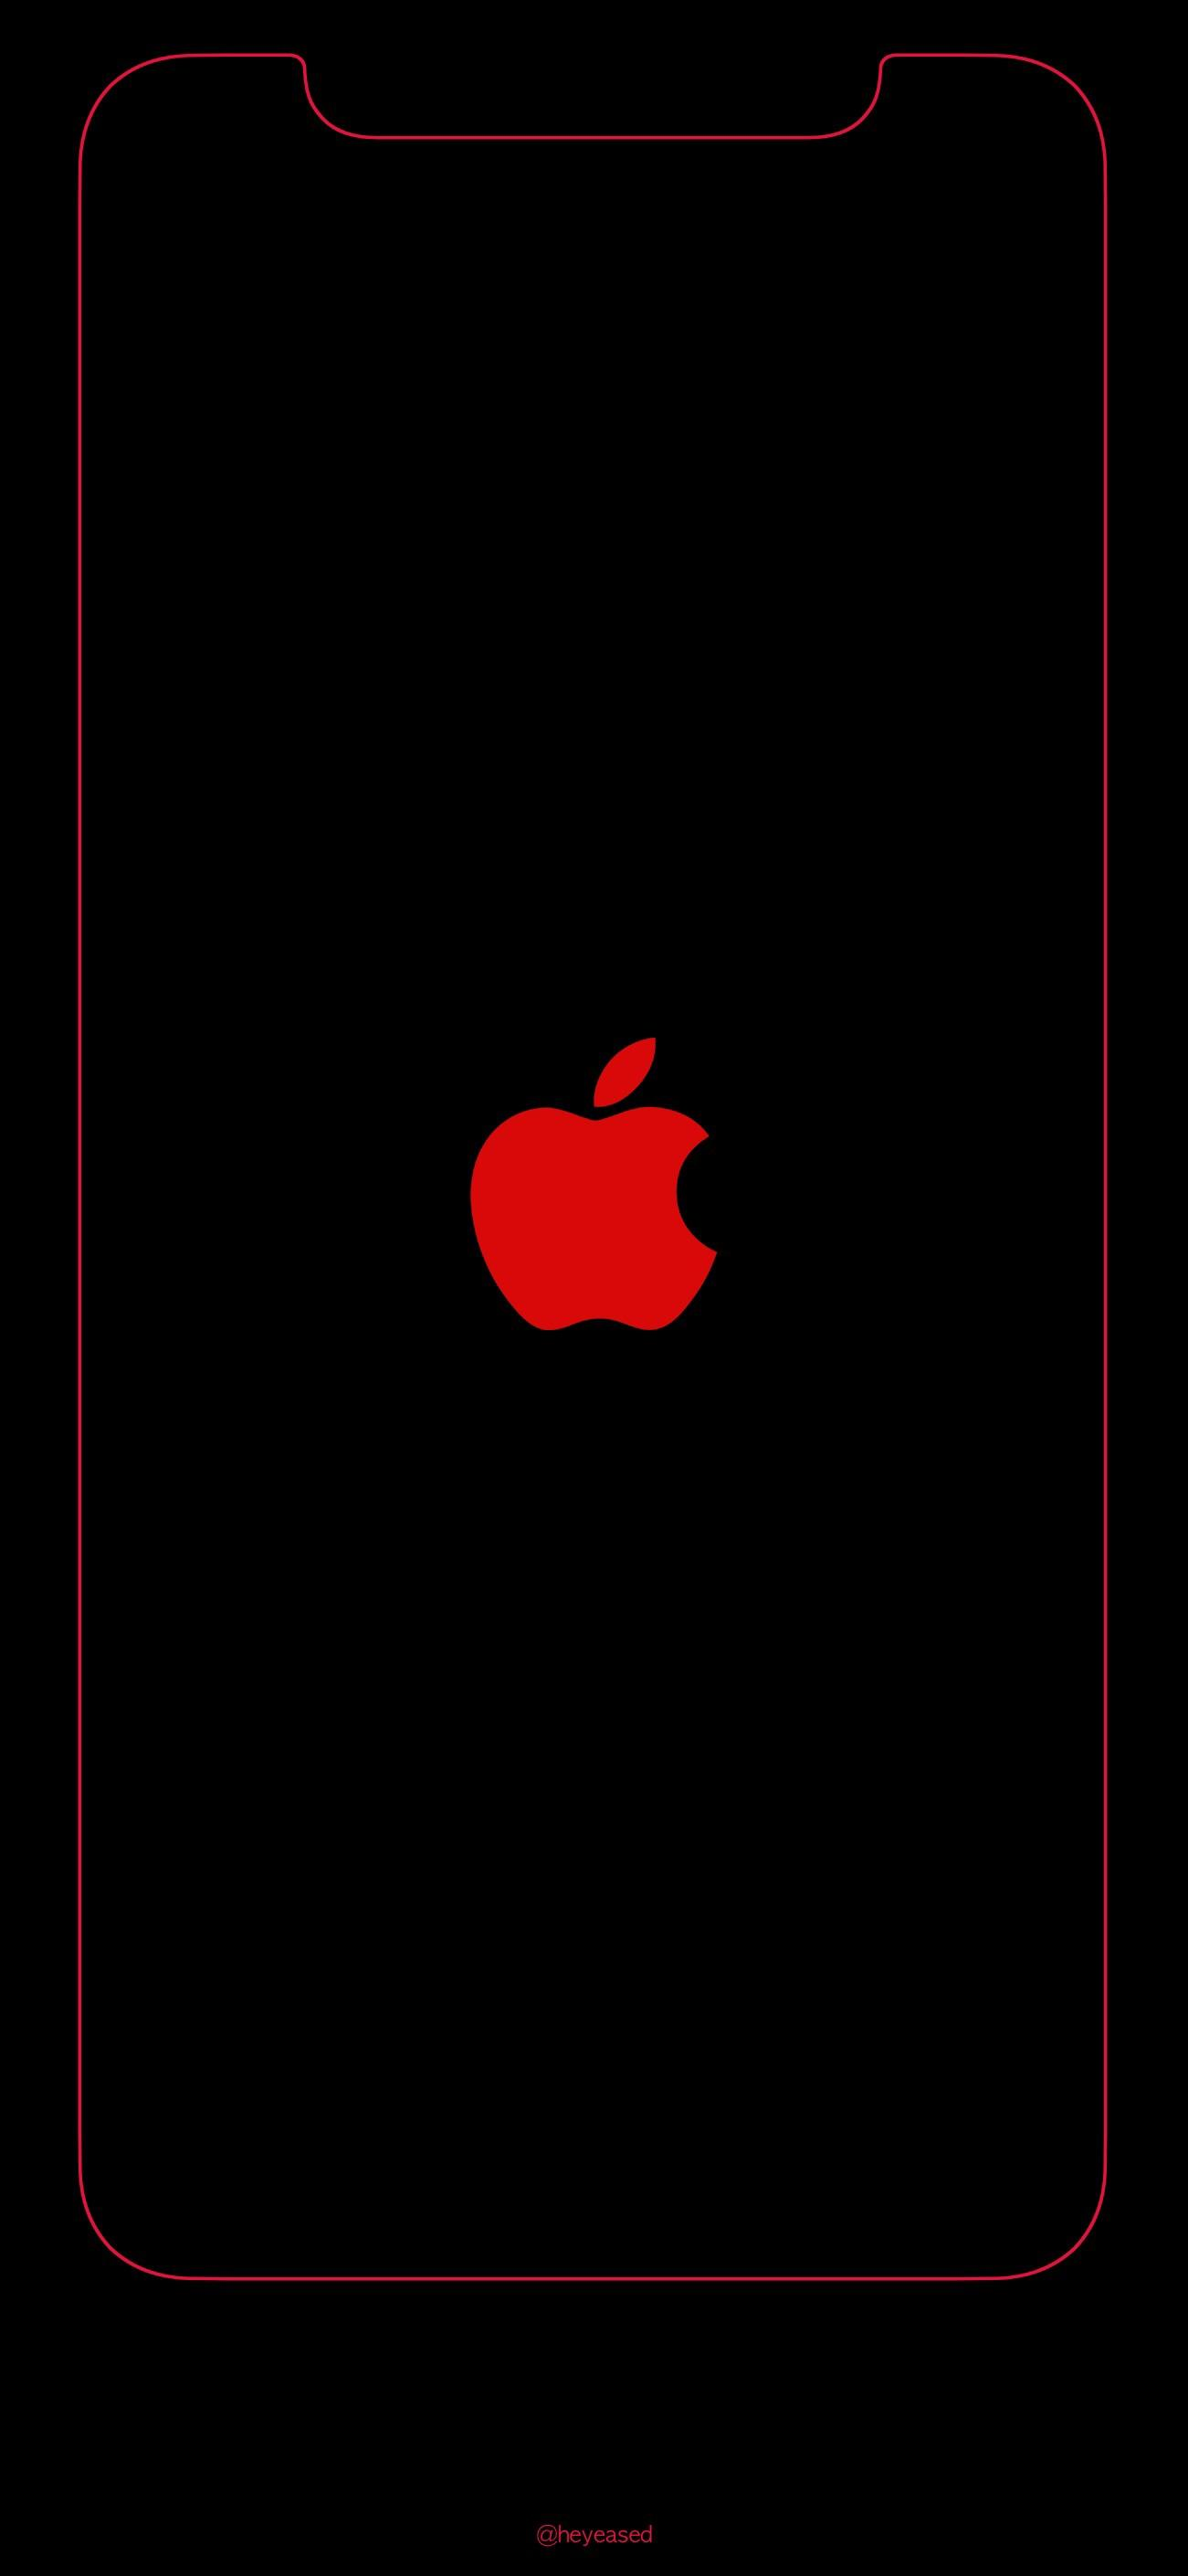 super retina found this cool boarder wallpaper for iphone x and